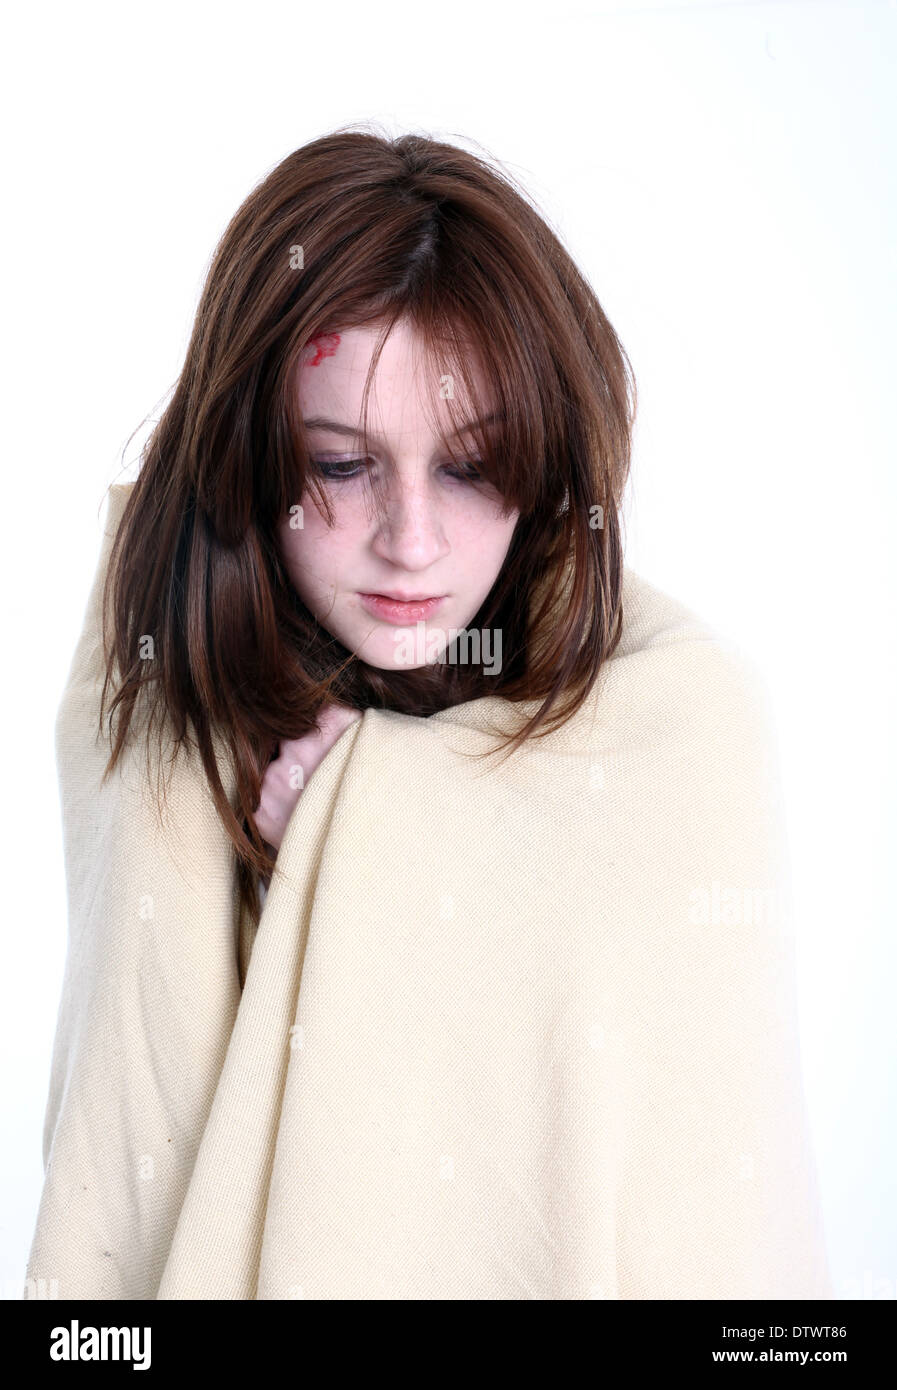 Young female model in the studio role playing as a survivor of a natural disaster, November 2013 - Stock Image